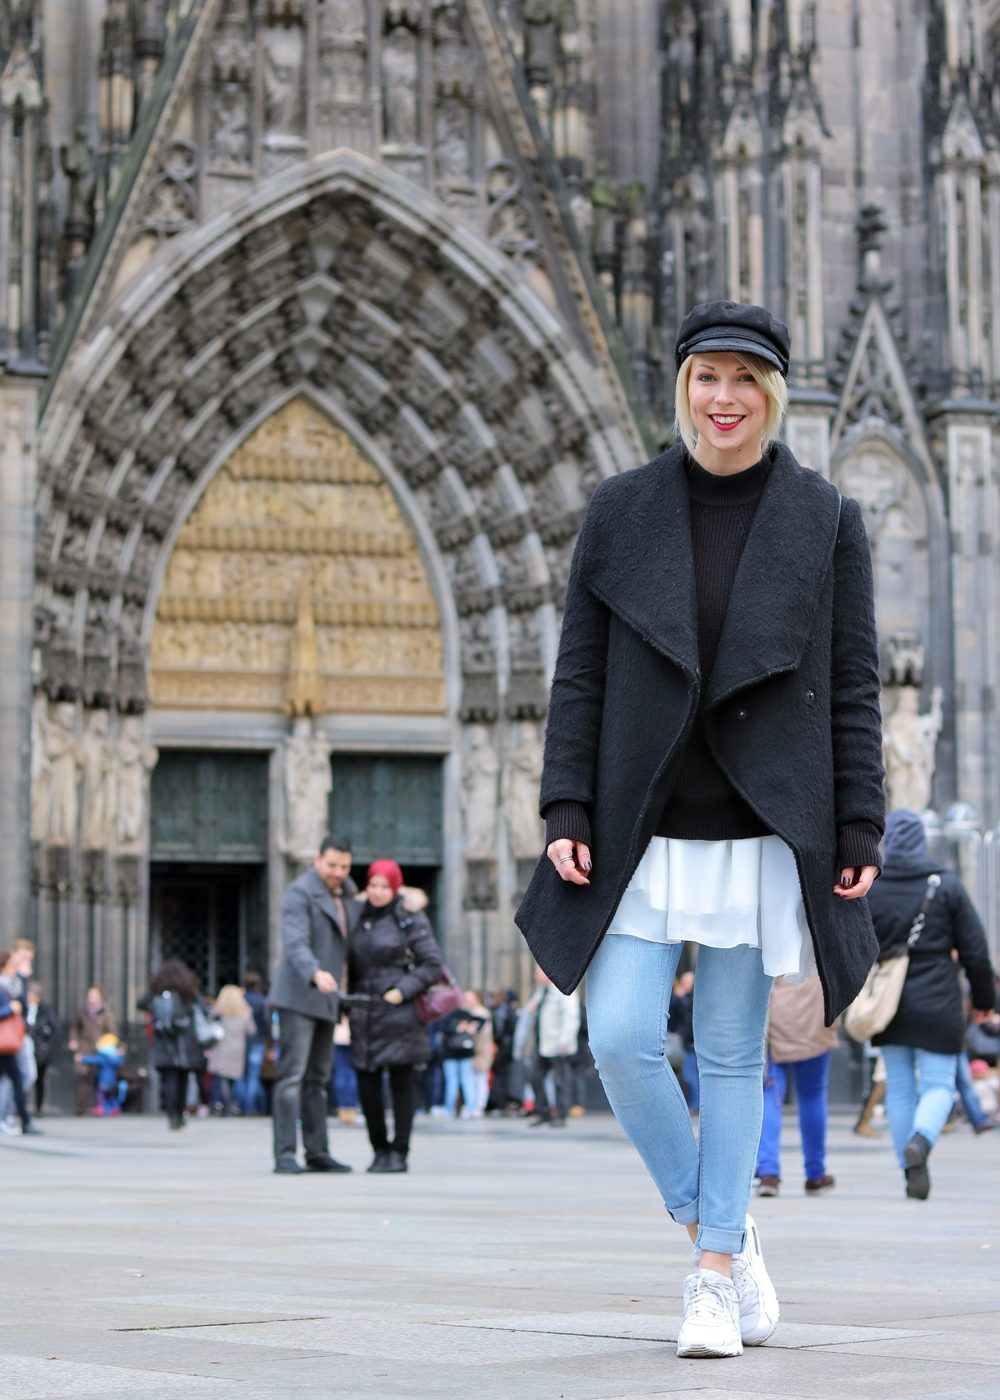 outfit-koelner-dom-fashionblogger